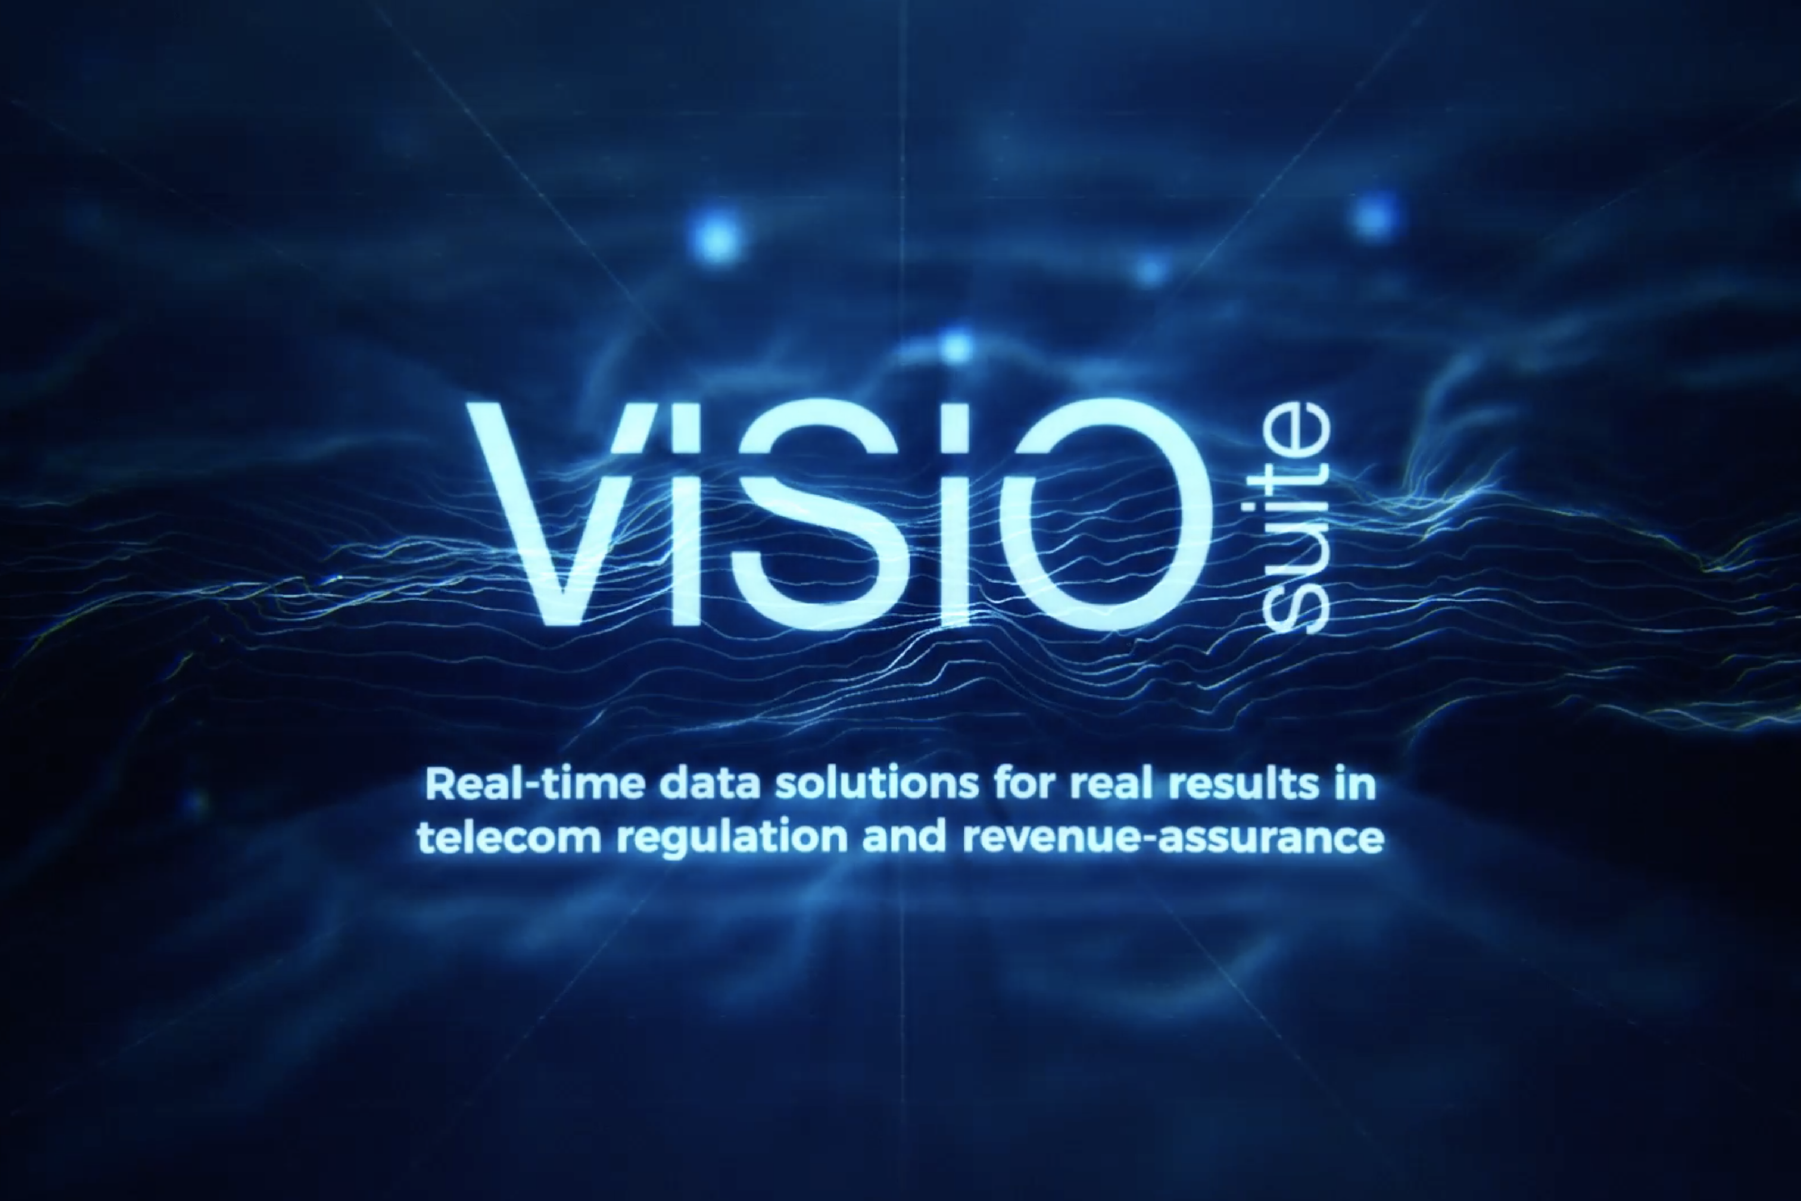 Visio Suite Video